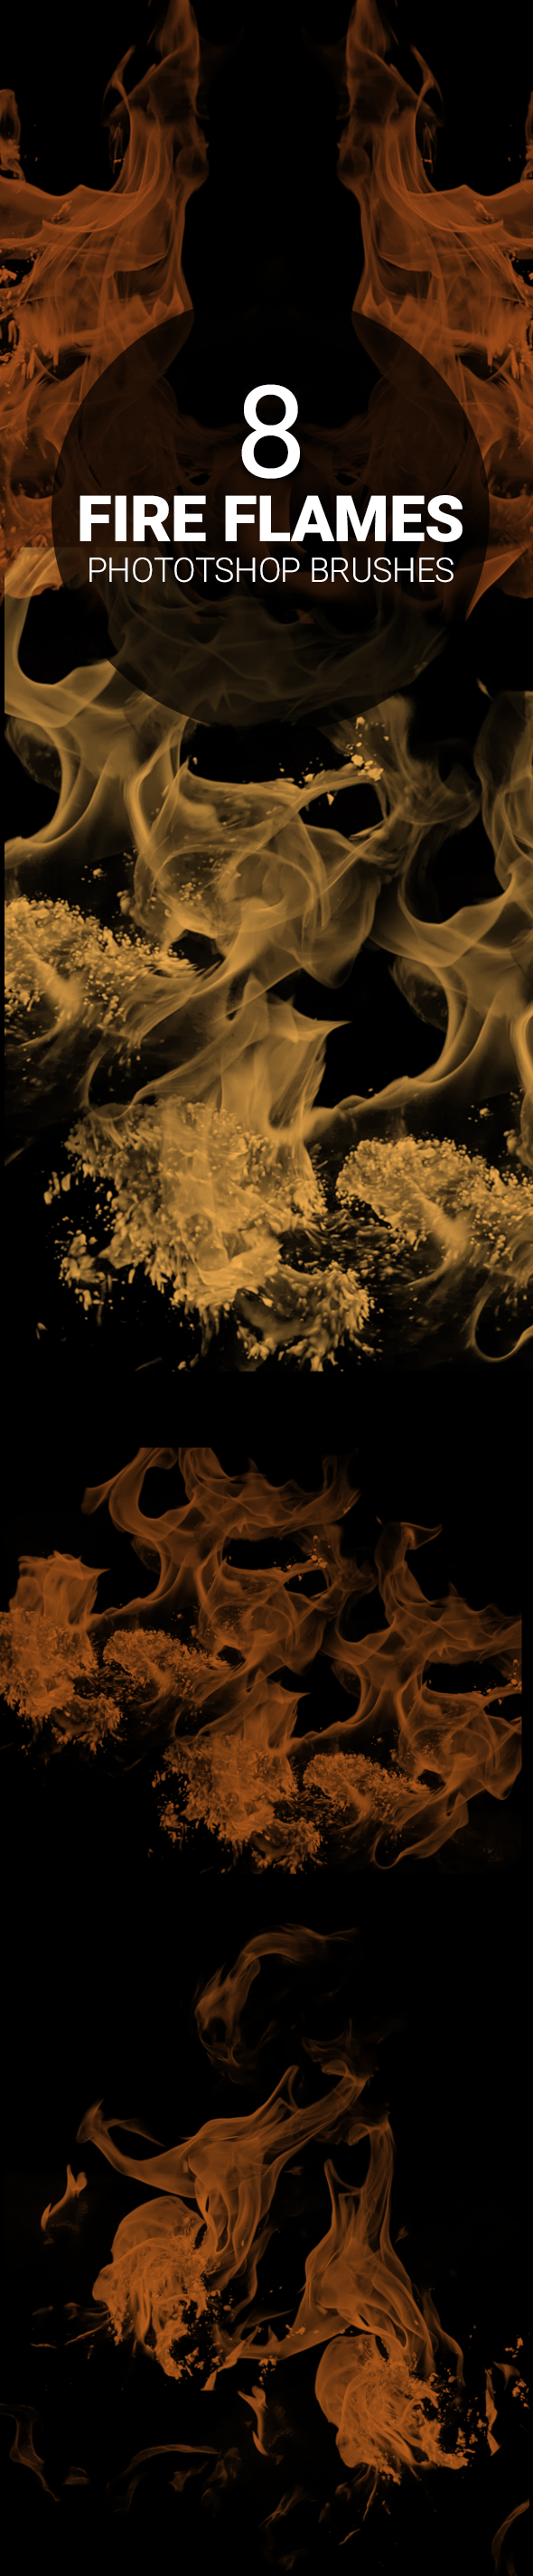 fire photoshop brush set 8 fire flames Photoshop brush set